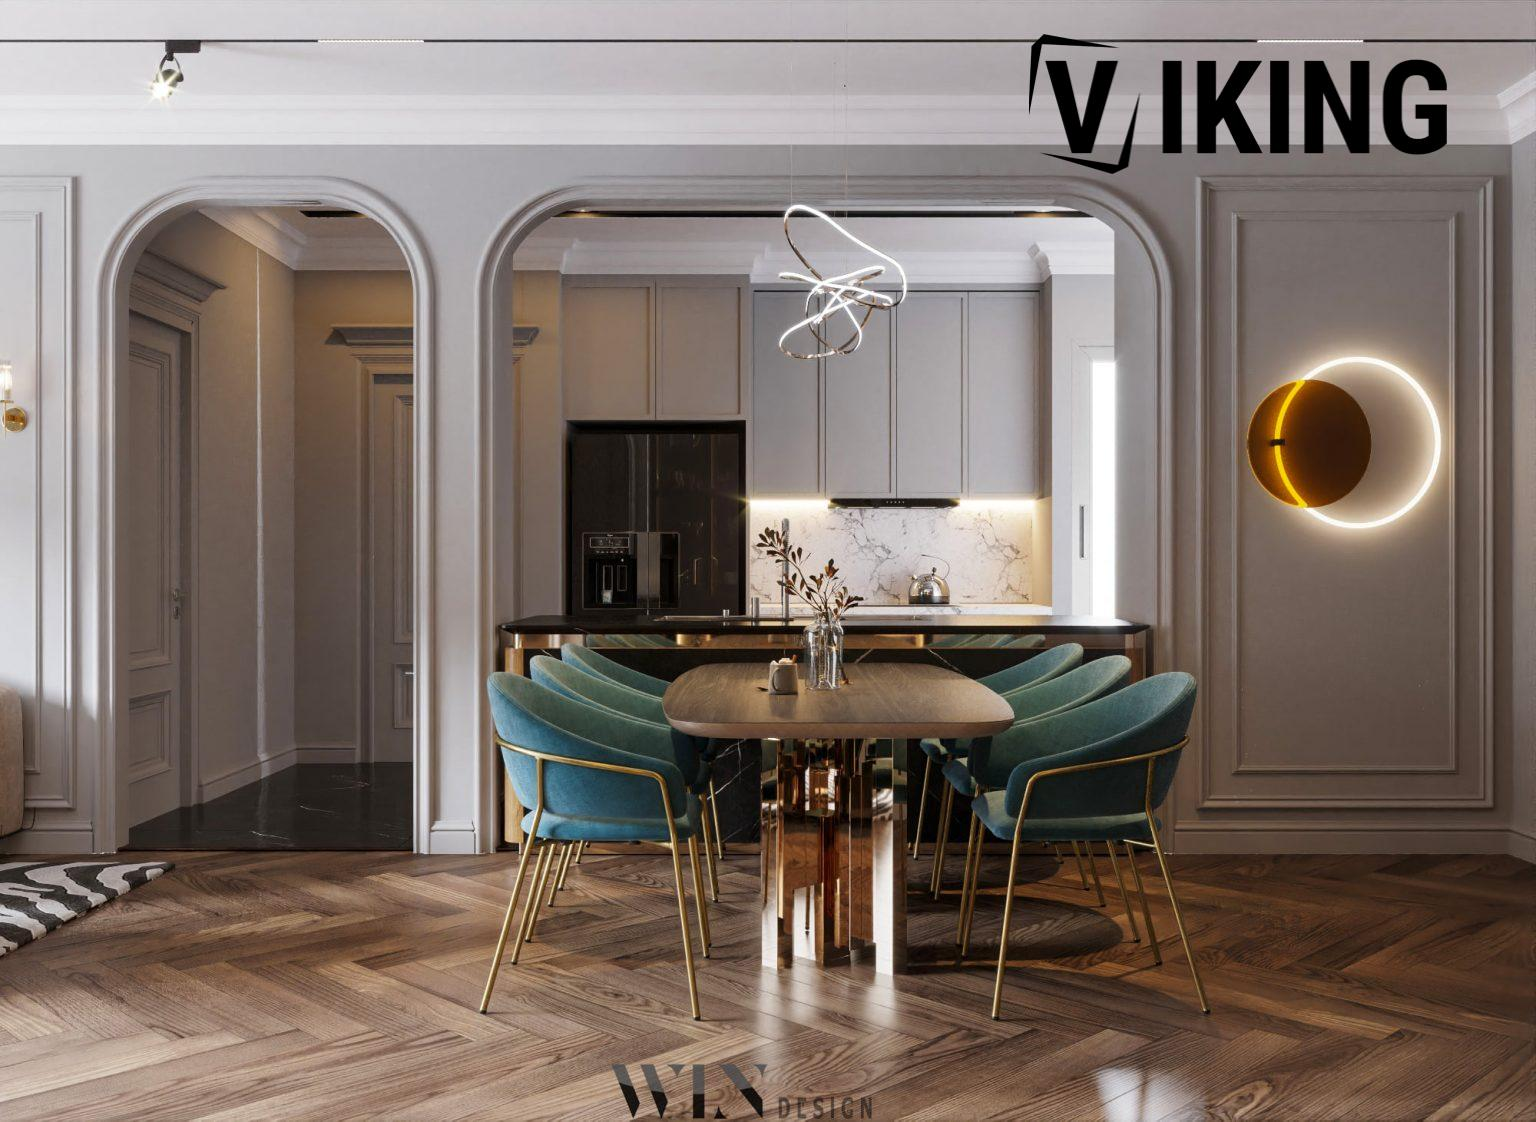 4207.Interior Apartment Scenes 3dsmax File free download by Nguyen Vinh 7 1536x1122 1